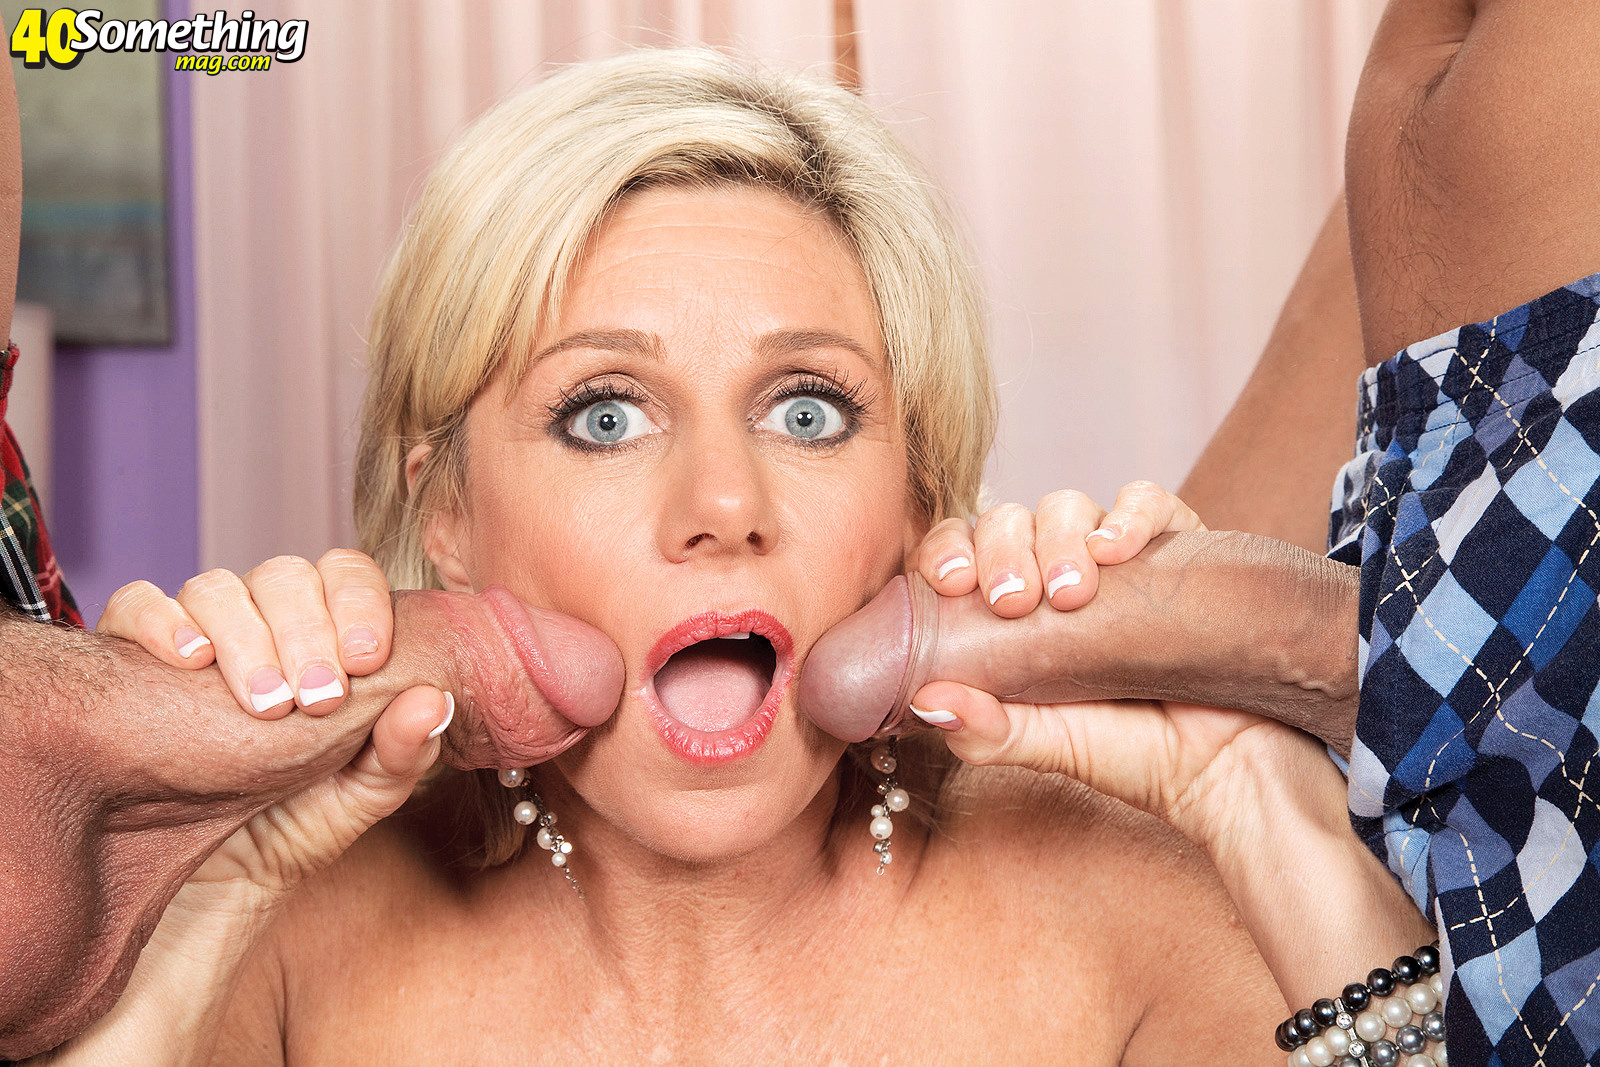 for mature payton hall two cocks are better than one pichunter